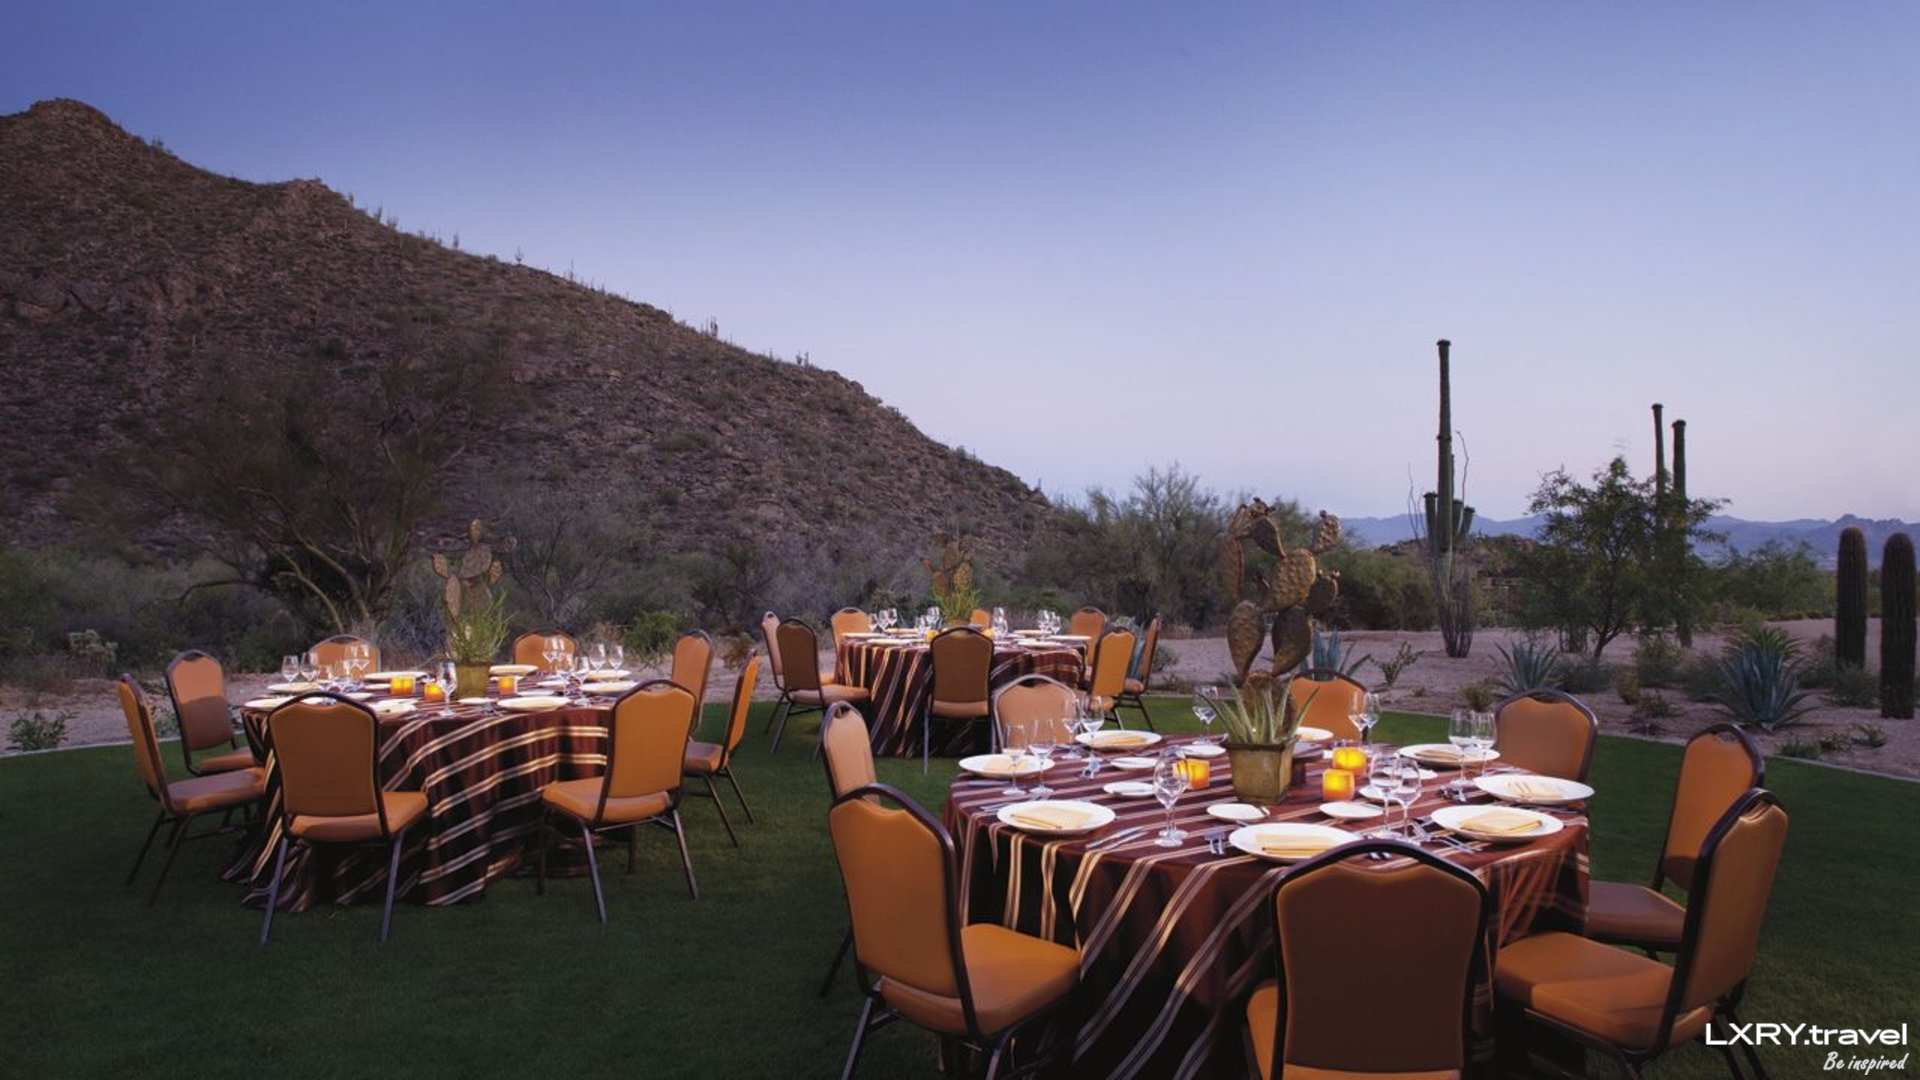 The Ritz-Carlton, Dove Mountain 25/56